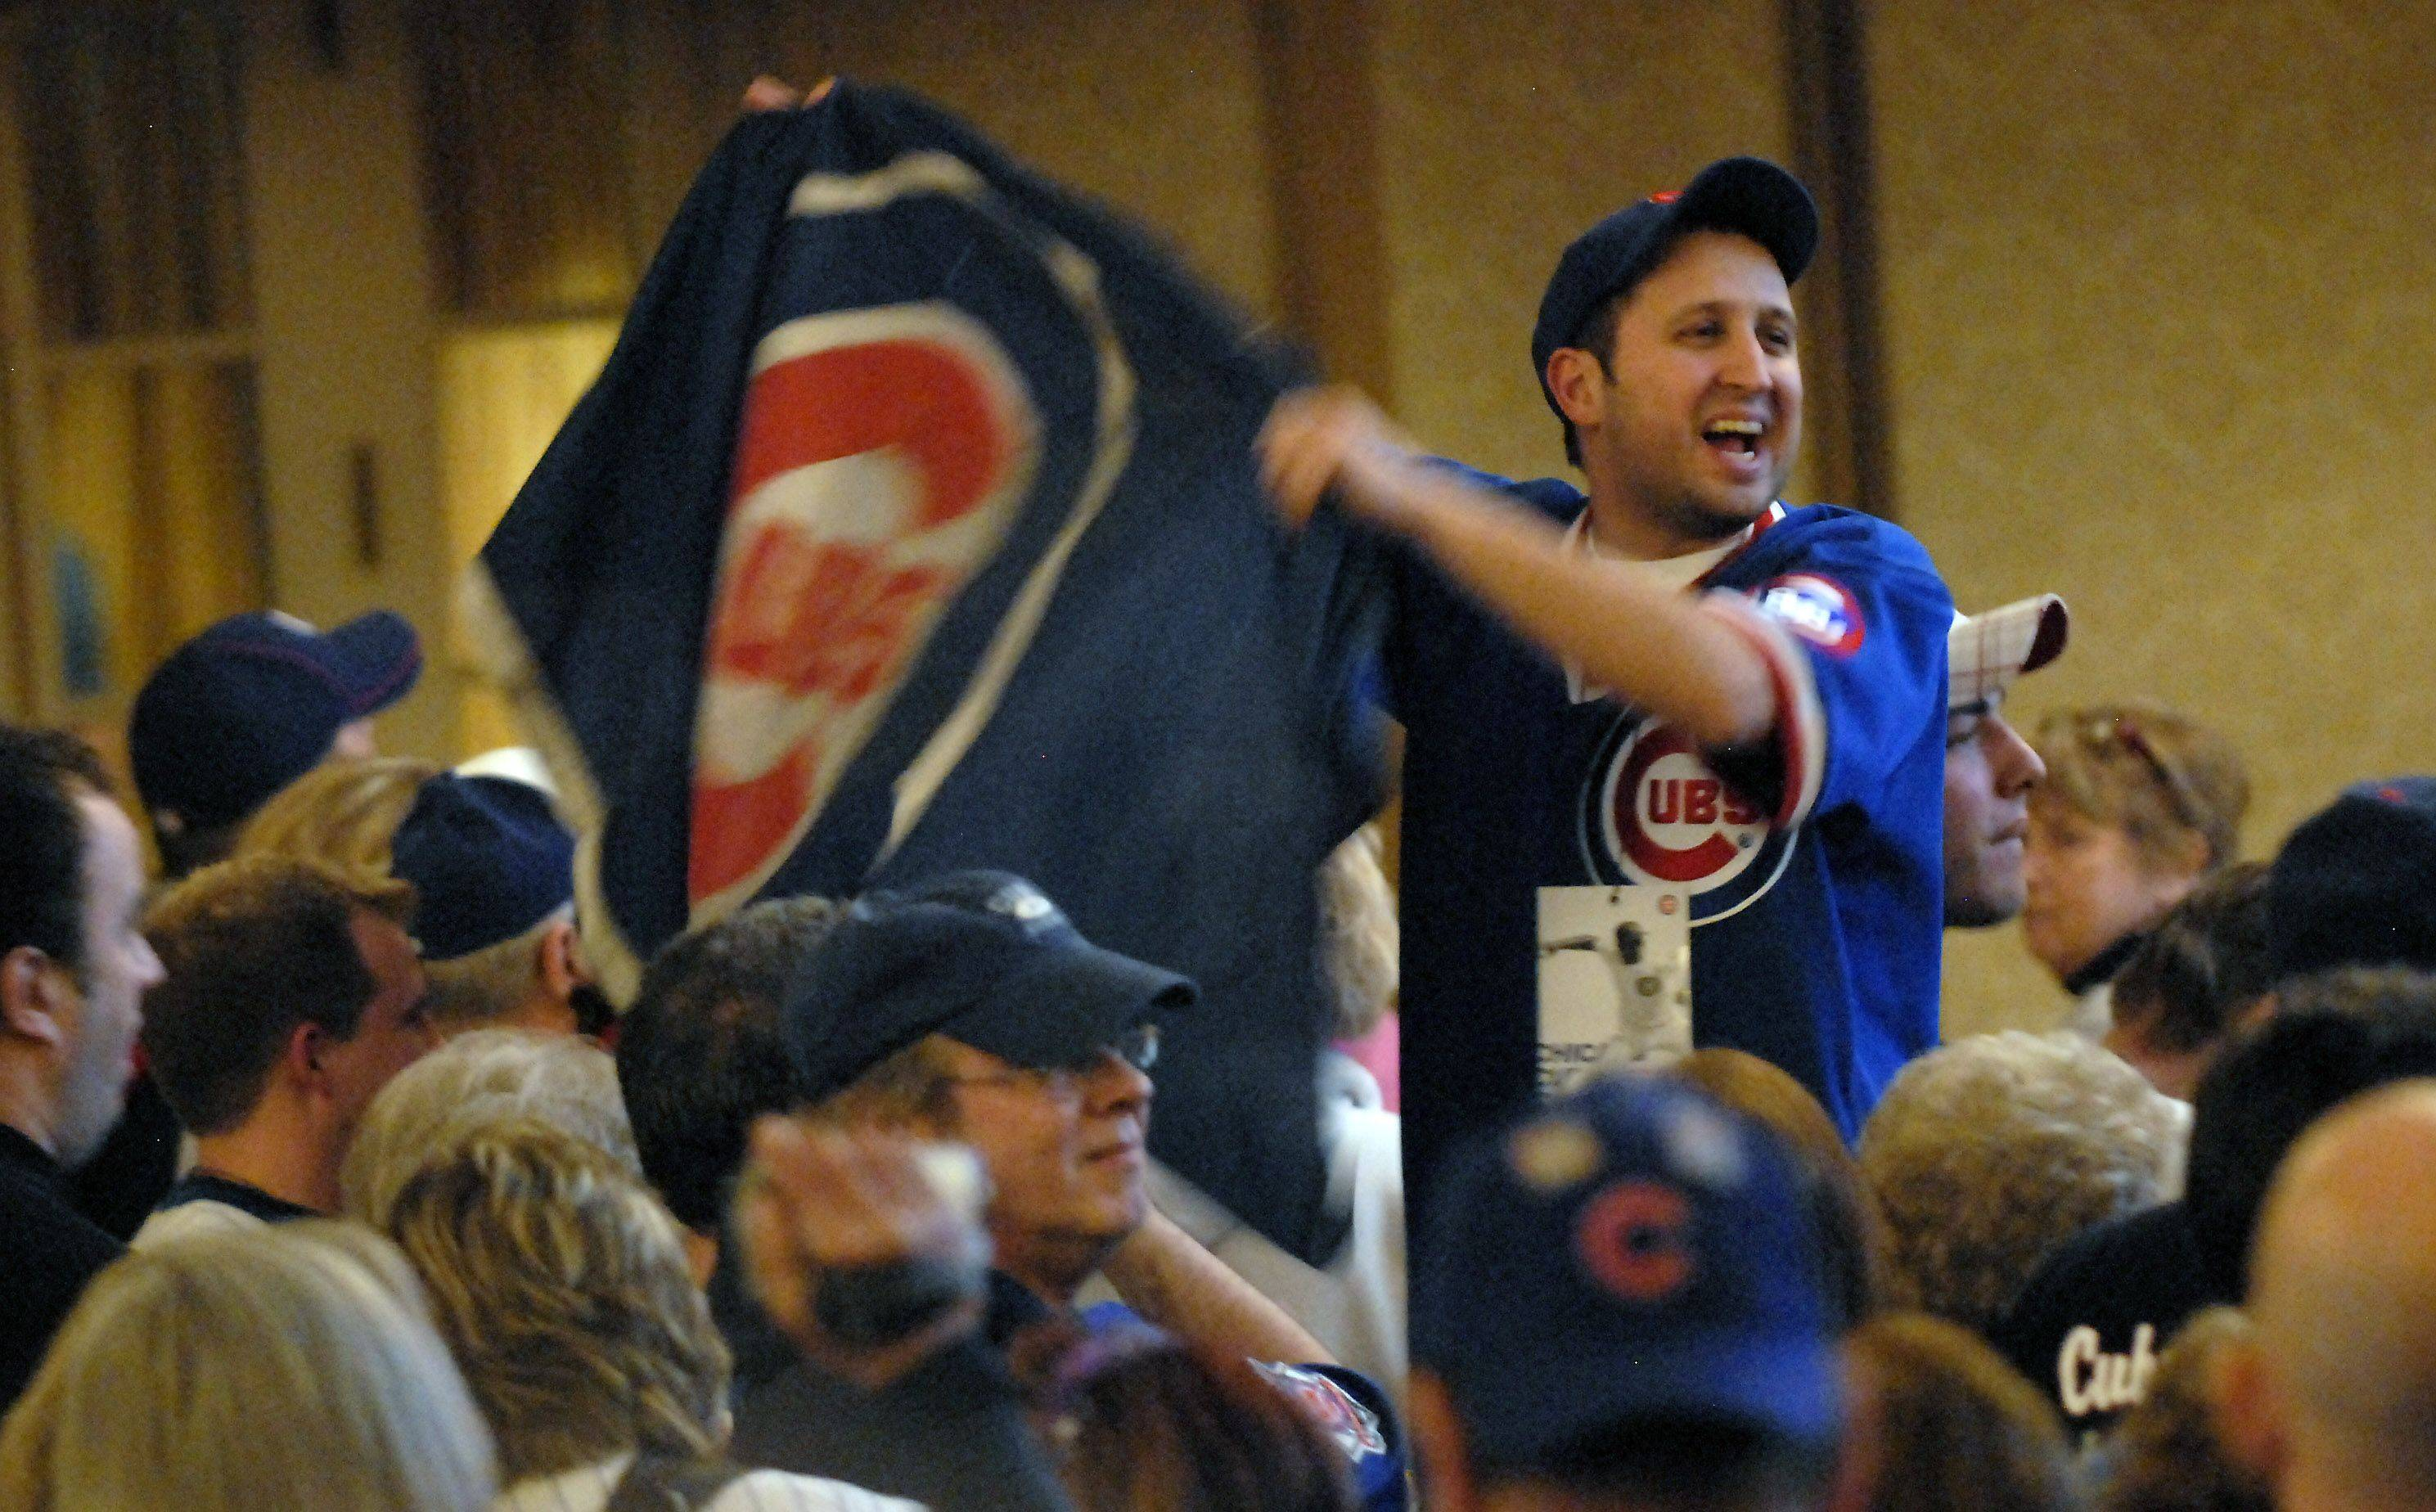 Paul Dzien of Bartlett leads a chant for Ron Santo during the first day of the Cubs convention.